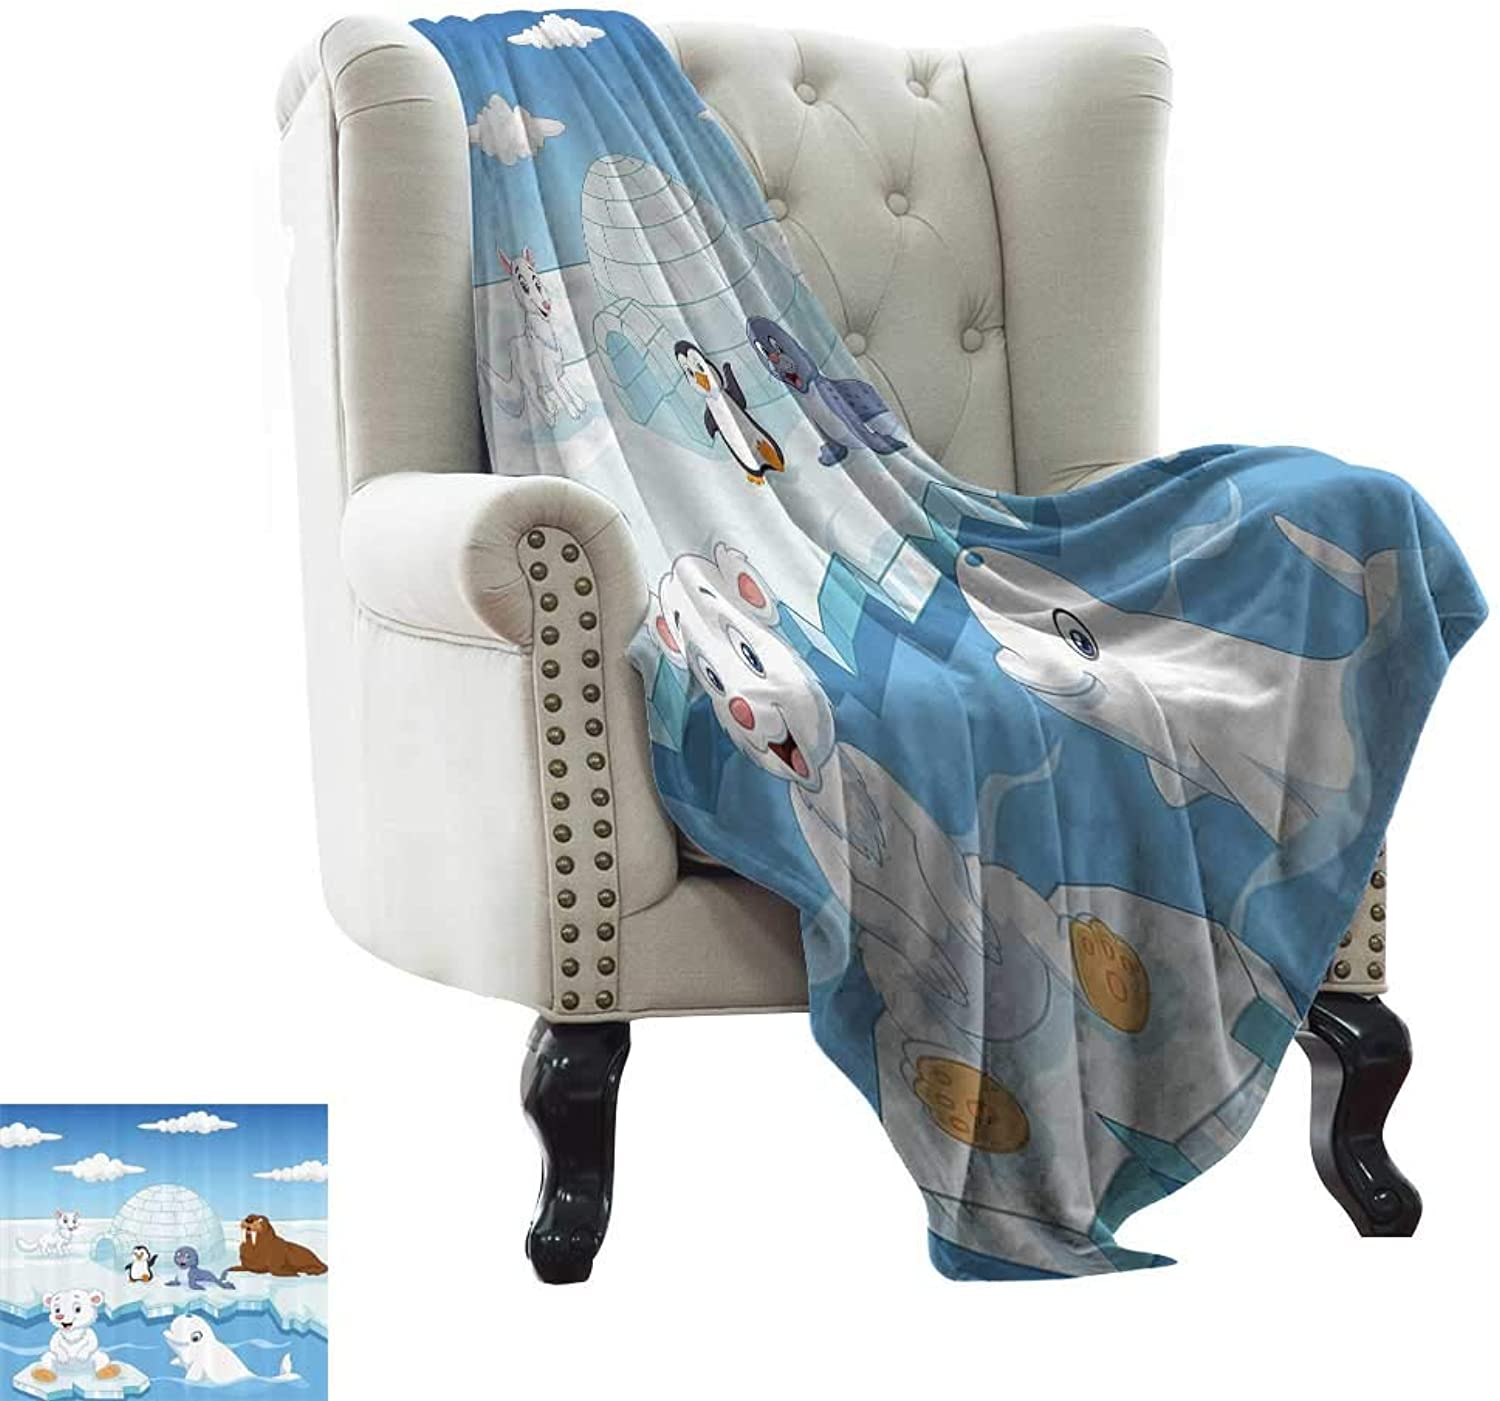 RenteriaDecor Kids Decor Blankets Image of Arctics Animals Polar Bears Seal Penguins Wolfs Whales Artwork 60 x50  Decorative Blankets for Car Travel Sky bluee and White